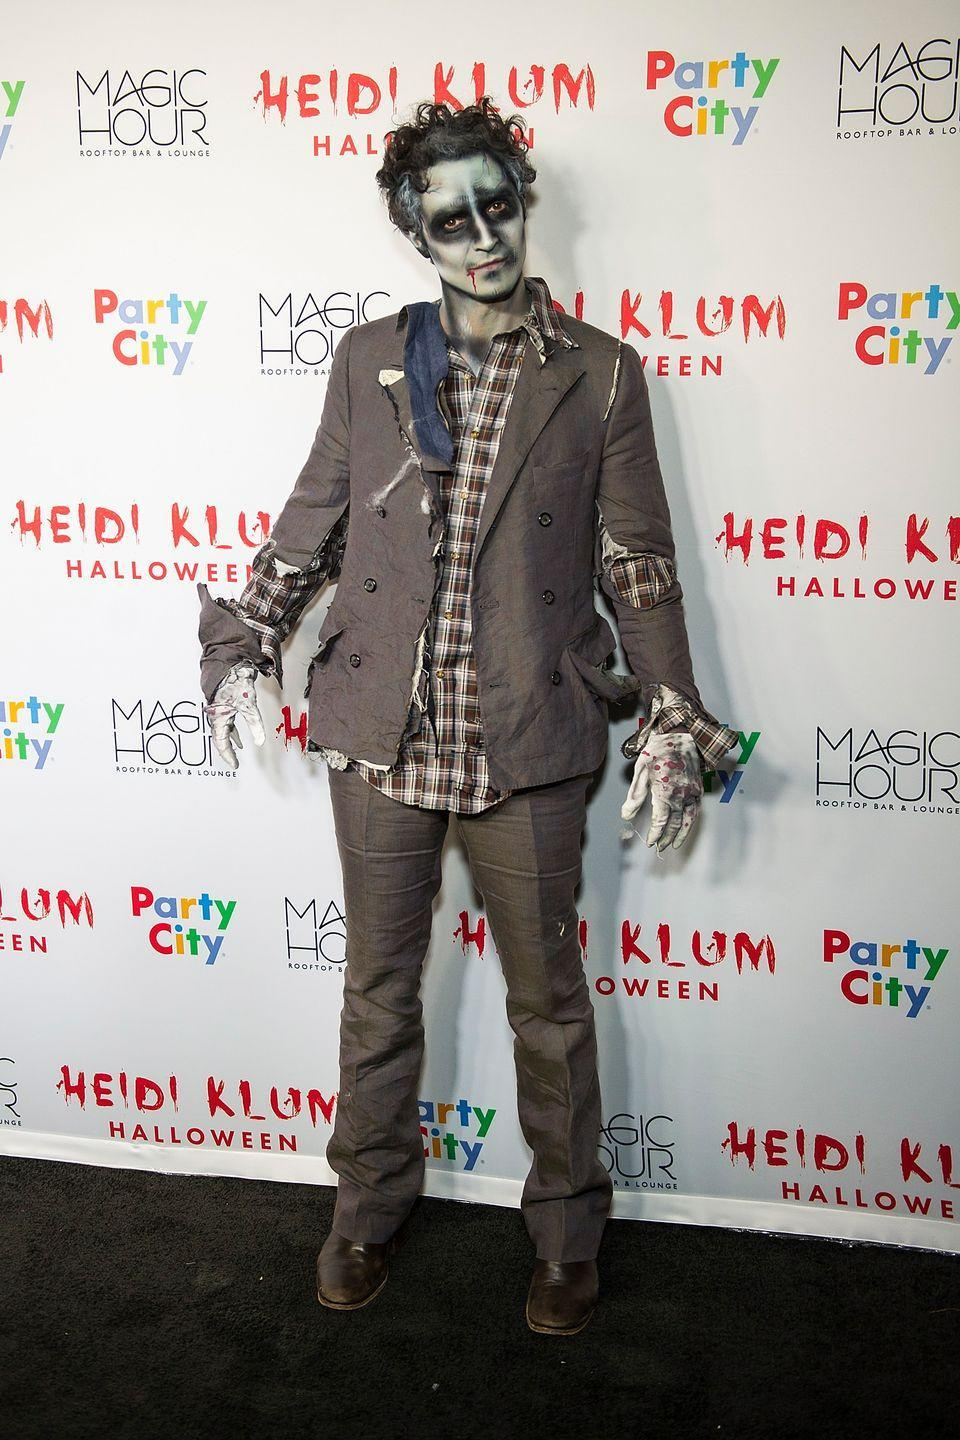 """<p>If you have some clothes you're willing to shred and know someone with a knack for face paint, then you can join the undead for the night. </p><p><a class=""""link rapid-noclick-resp"""" href=""""https://www.amazon.com/Unomor-Halloween-Makeup-Vampire-Zombie/dp/B08B632ZY3?tag=syn-yahoo-20&ascsubtag=%5Bartid%7C10070.g.28171554%5Bsrc%7Cyahoo-us"""" rel=""""nofollow noopener"""" target=""""_blank"""" data-ylk=""""slk:SHOP FACE PAINT KIT"""">SHOP FACE PAINT KIT</a></p>"""